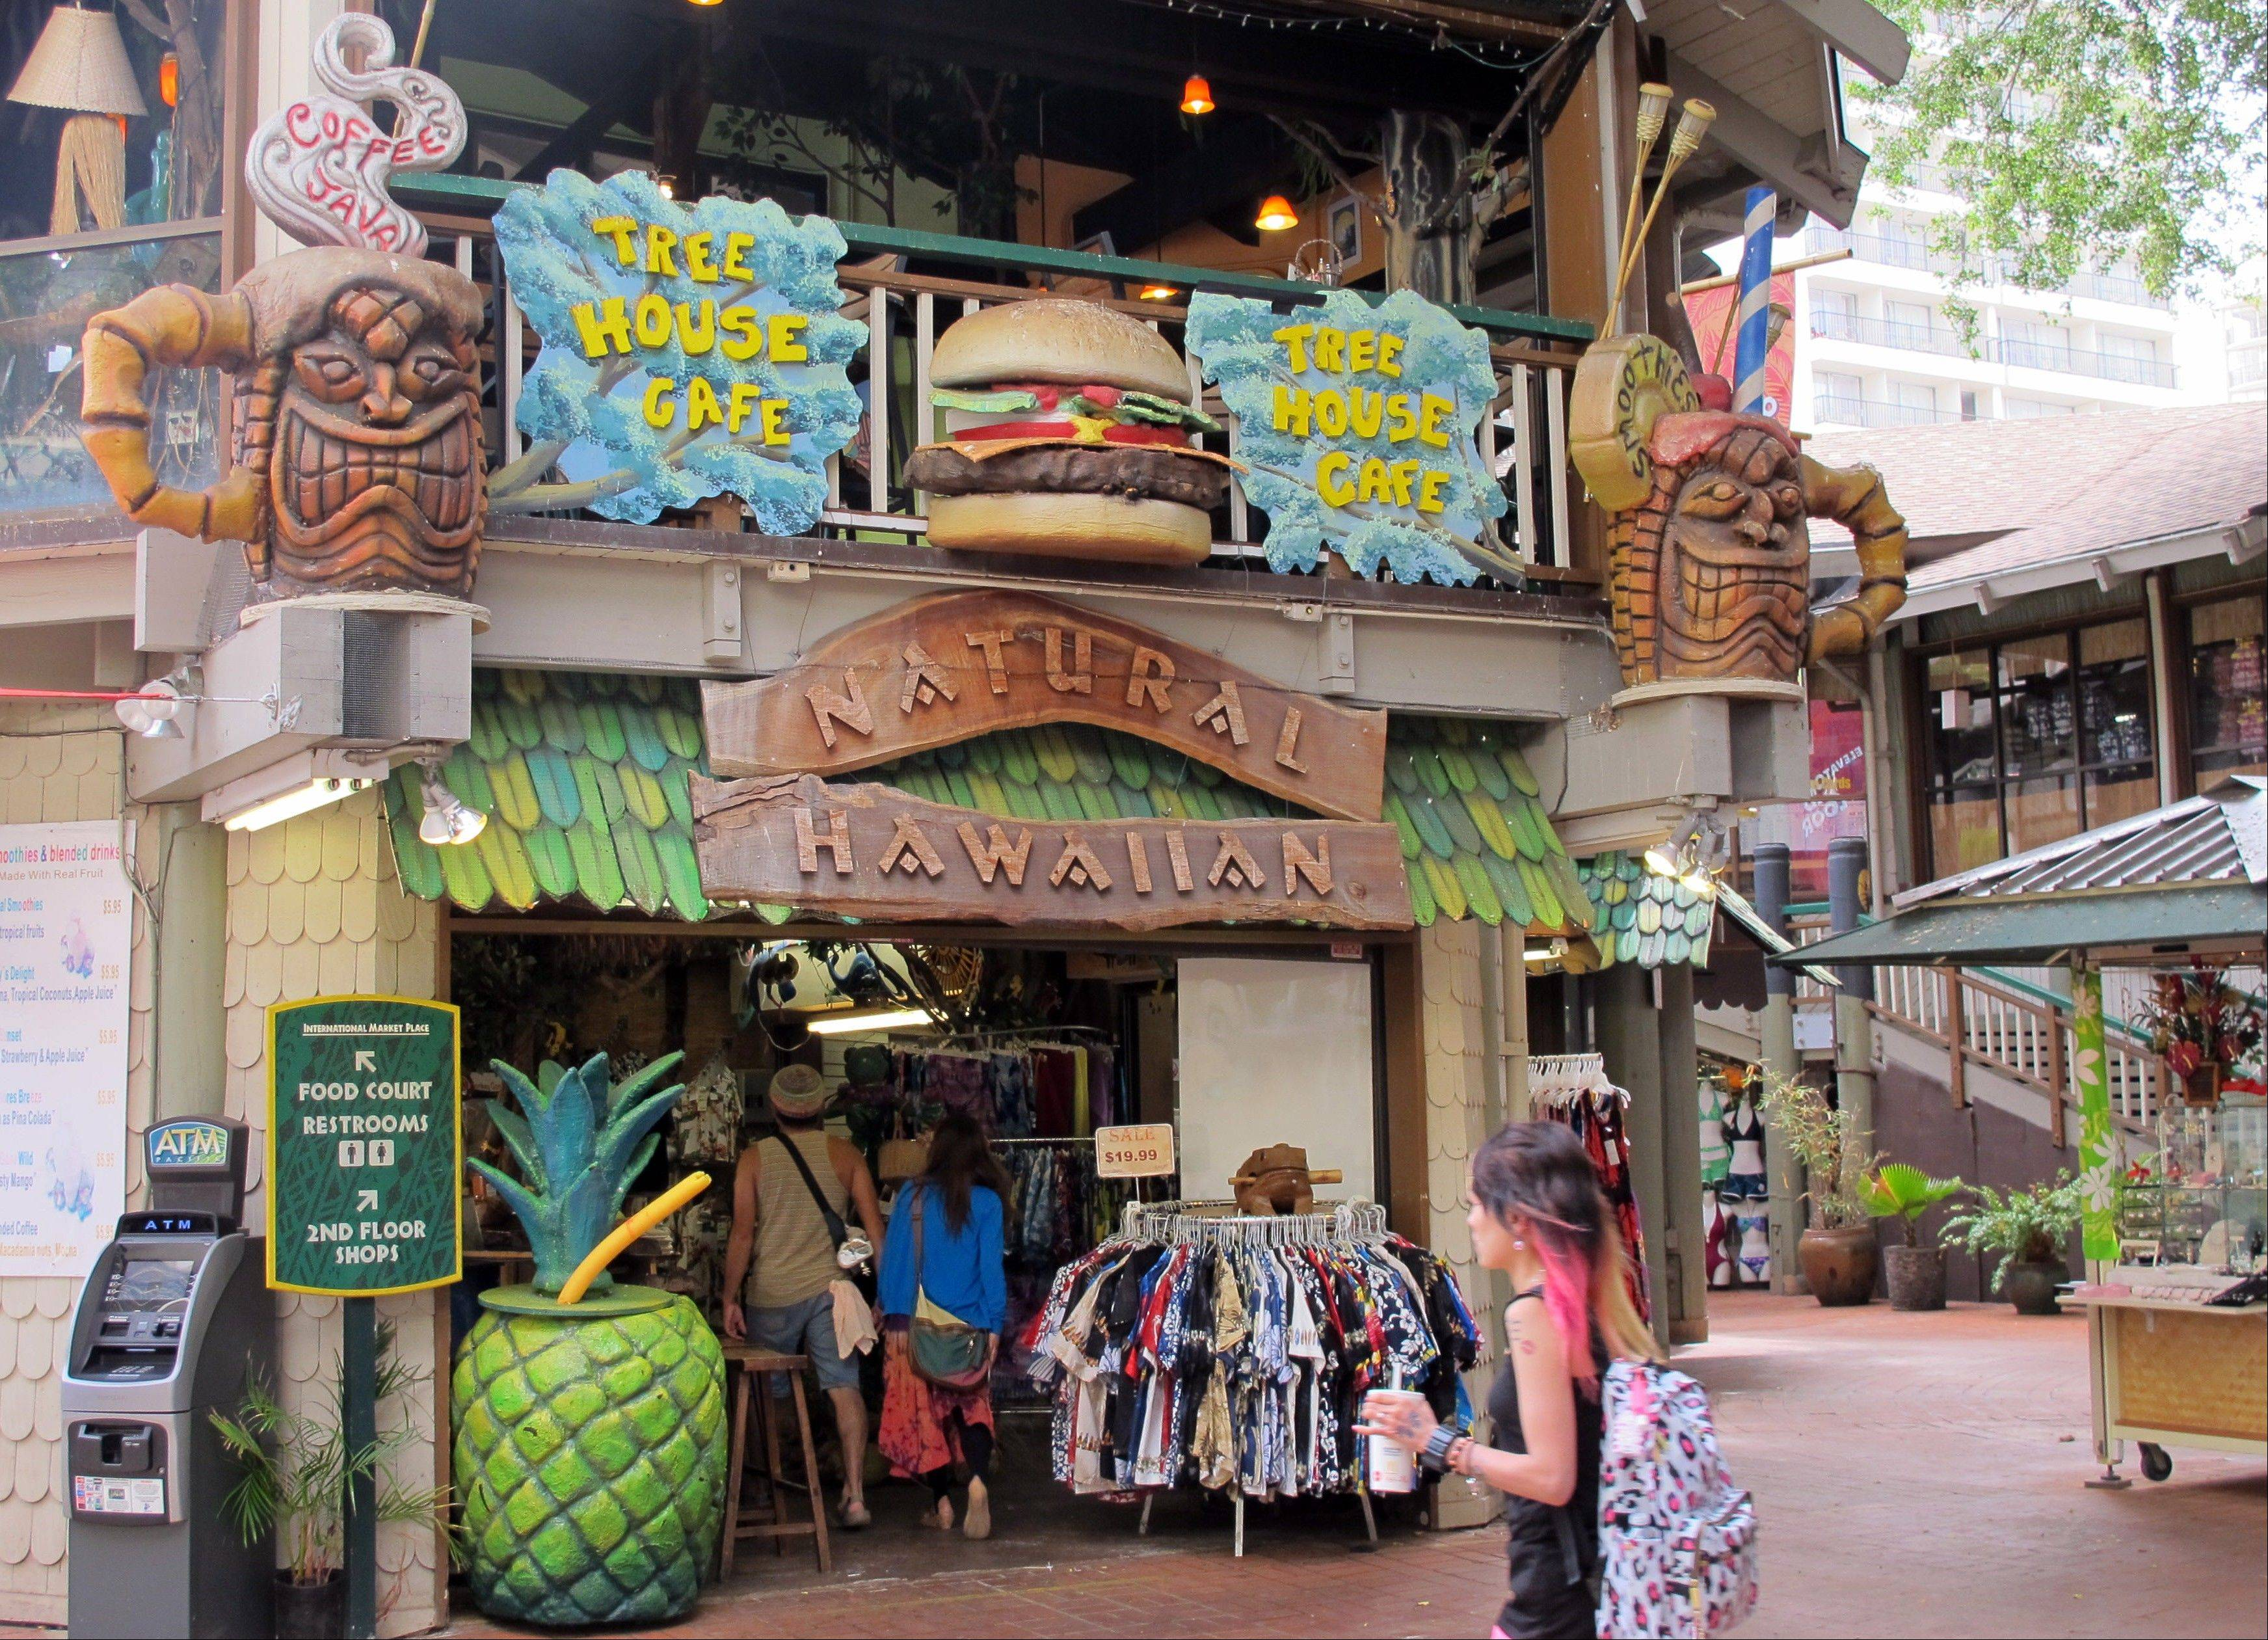 A Waikiki restaurant and store with cartoonish tiki decorations in seen in Honolulu.